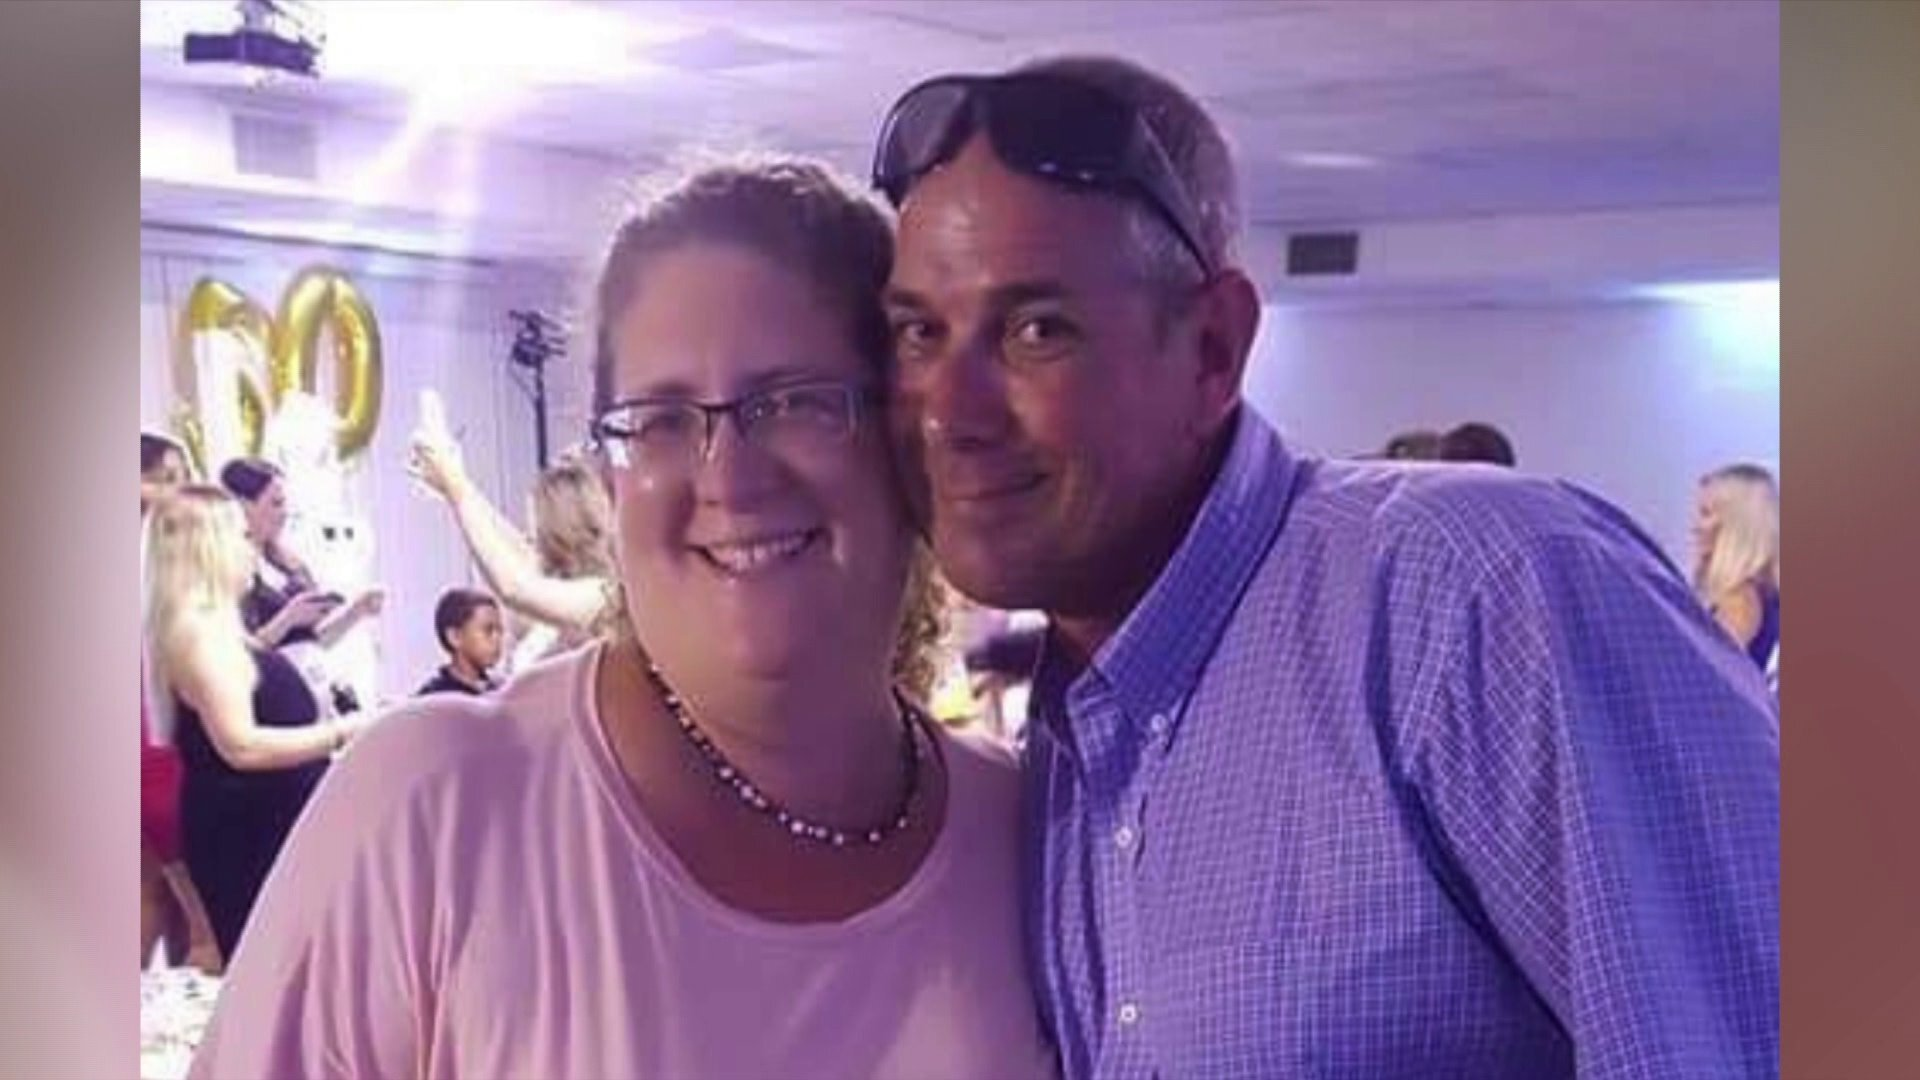 Photos: Husband of employee killed in Building 2 shares memories, final phone call and plea for openinvestigation